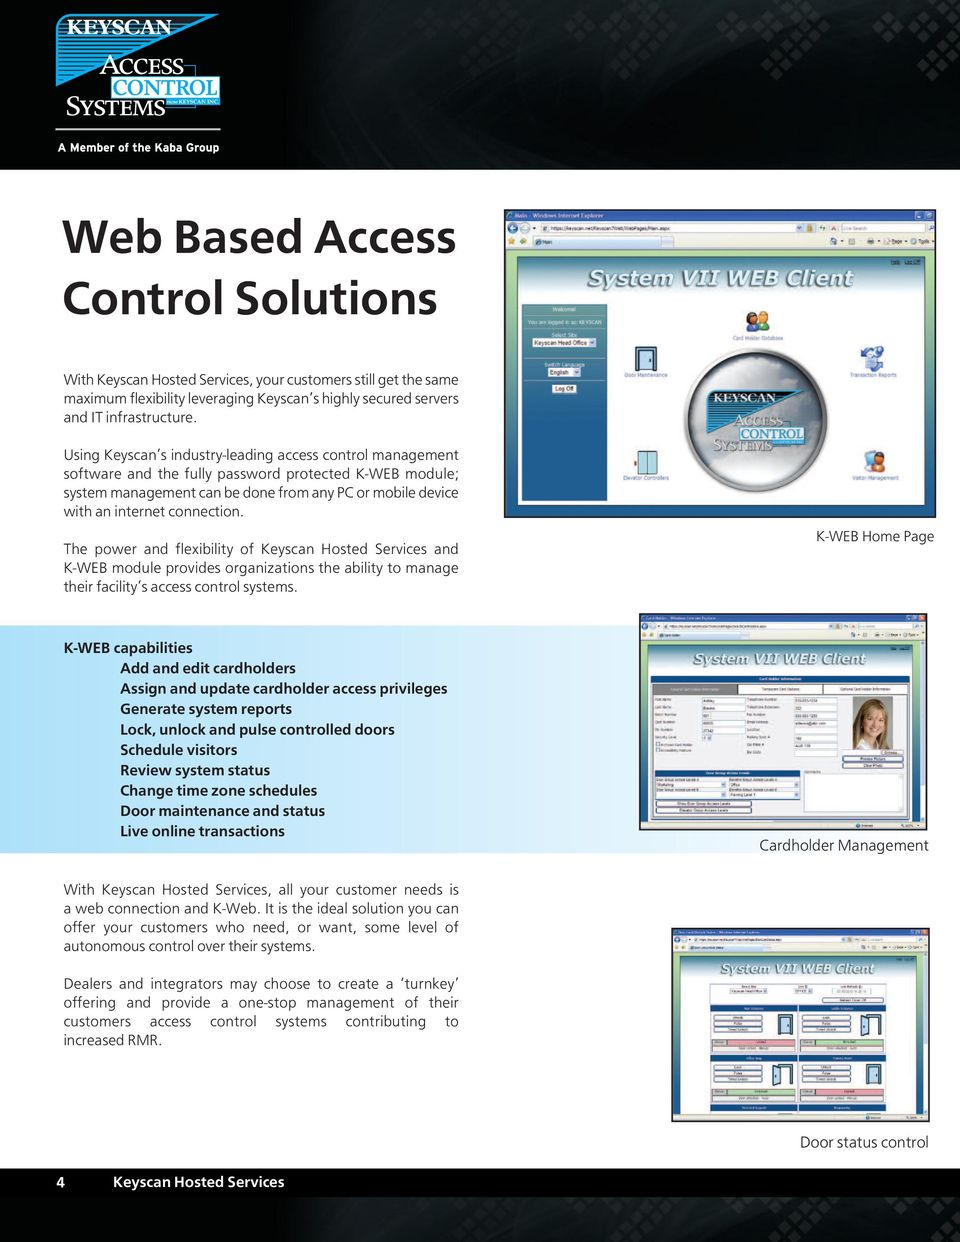 connection. The power and flexibility of Keyscan Hosted Services and K-WEB module provides organizations the ability to manage their facility s access control systems.